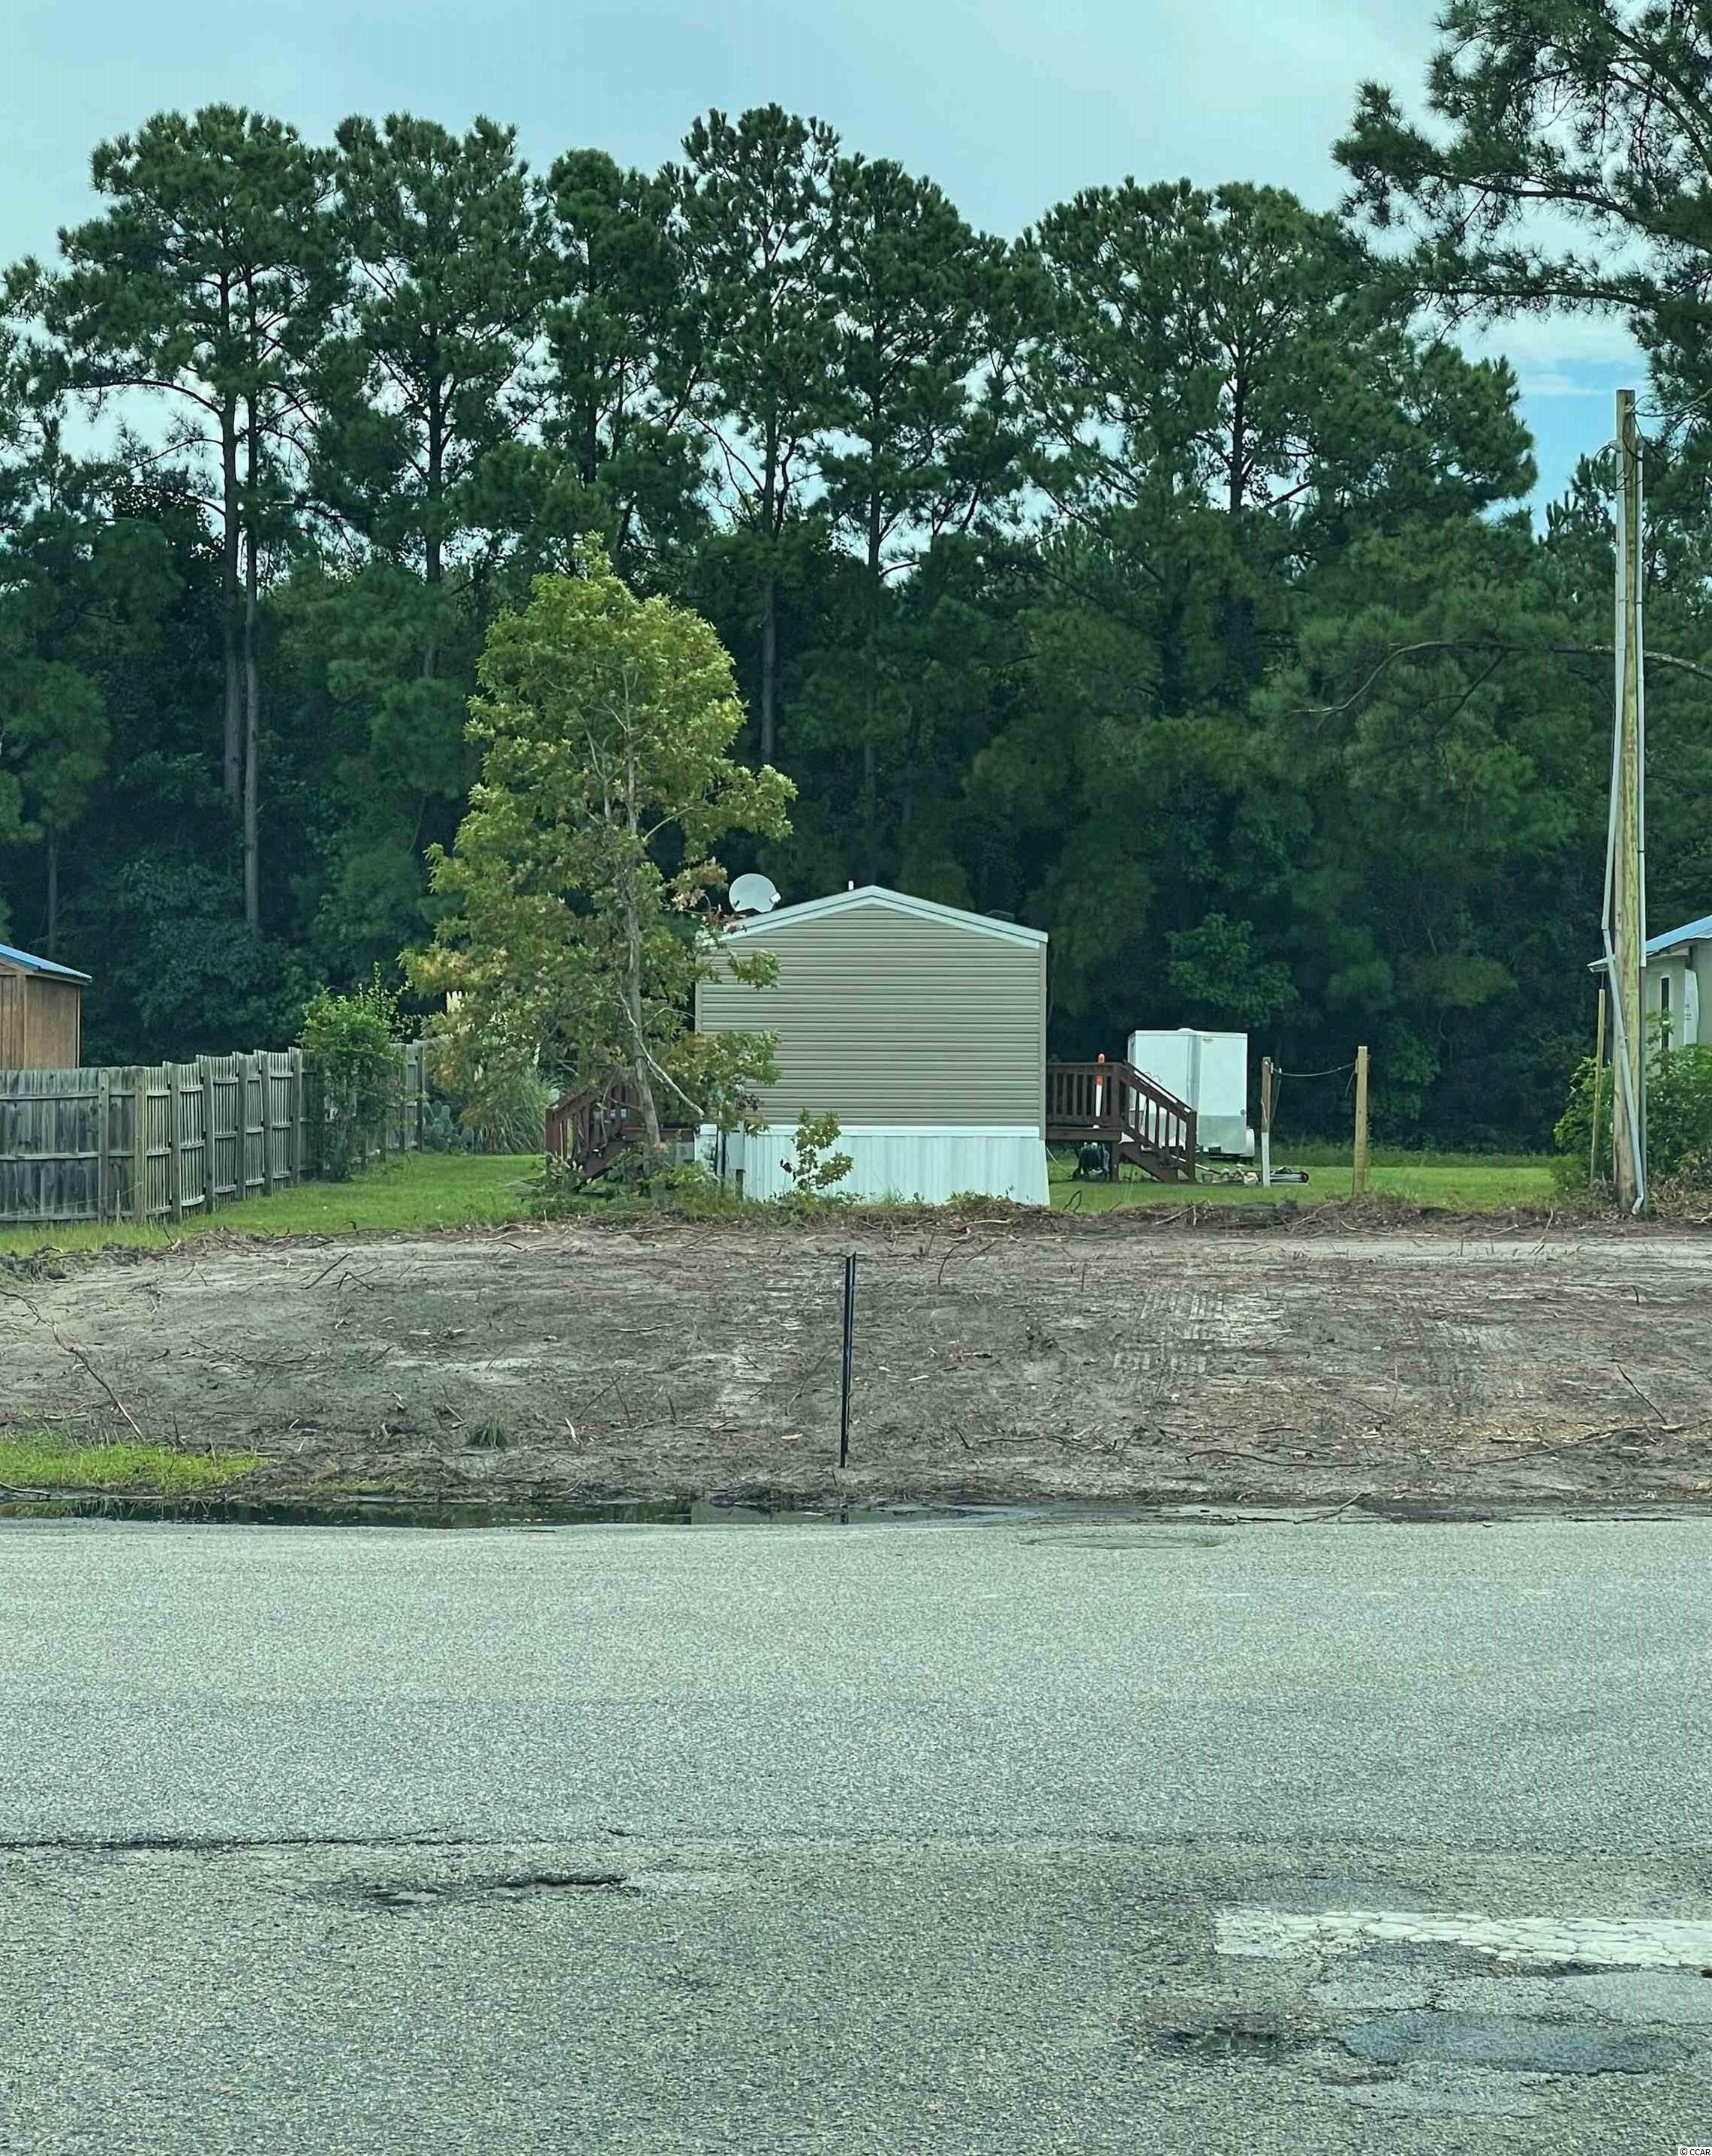 Cleared lot ready for your new home. You can have a mobile home, modular or stick built. Not in a flood zone and NO HOA. And if you act fast this is the last chance at having a double lot in the Grove. The lot beside this one is available also. The grove is 1.2 miles from the beach on a short golf cart ride. Just a few blocks from the ICW and public boat ramp. A short golf cart ride away from restaurants, bars, shopping and more.